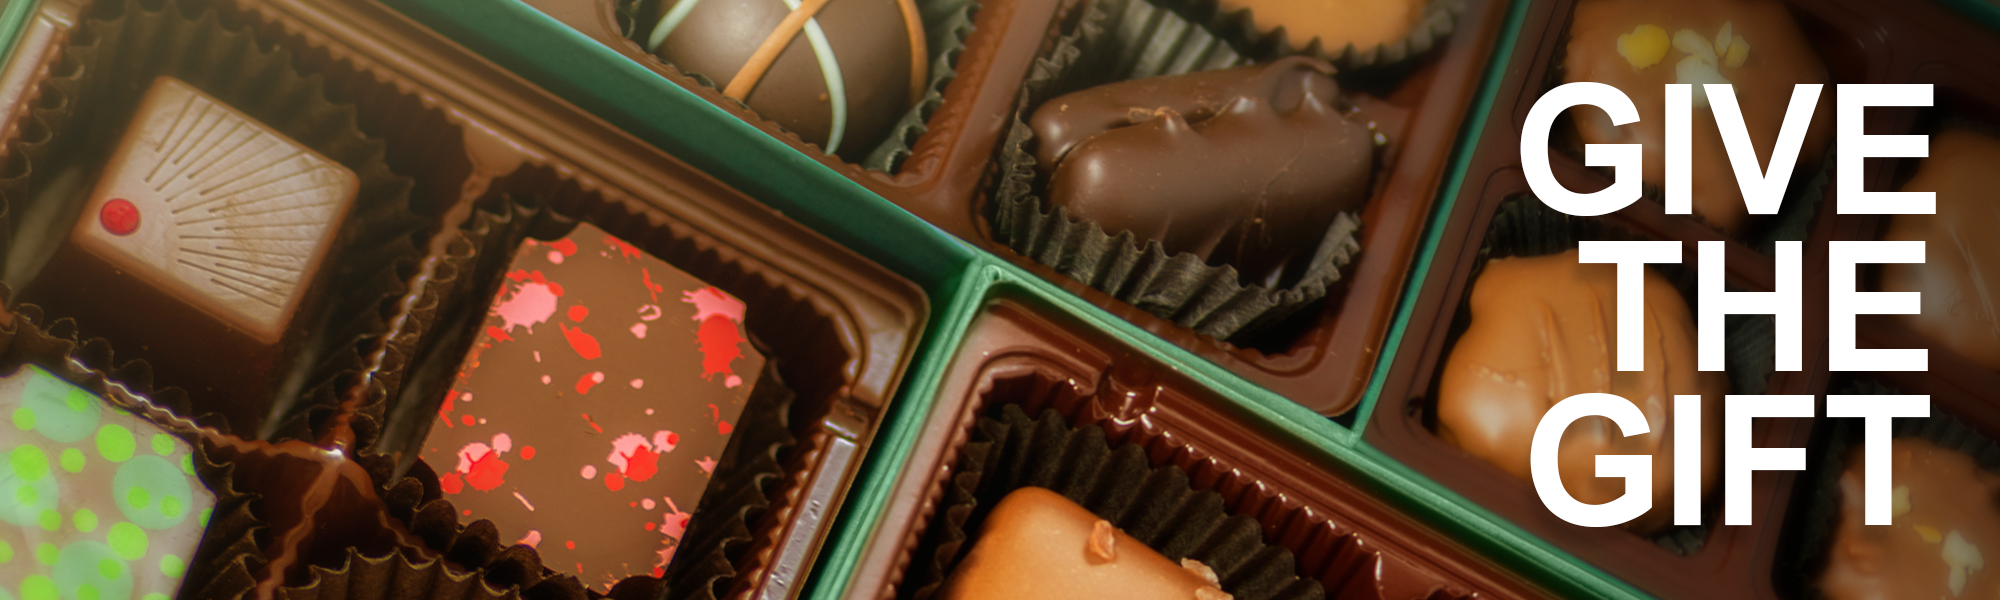 chocolate - gift basket - candy - delivery - chocolate covered